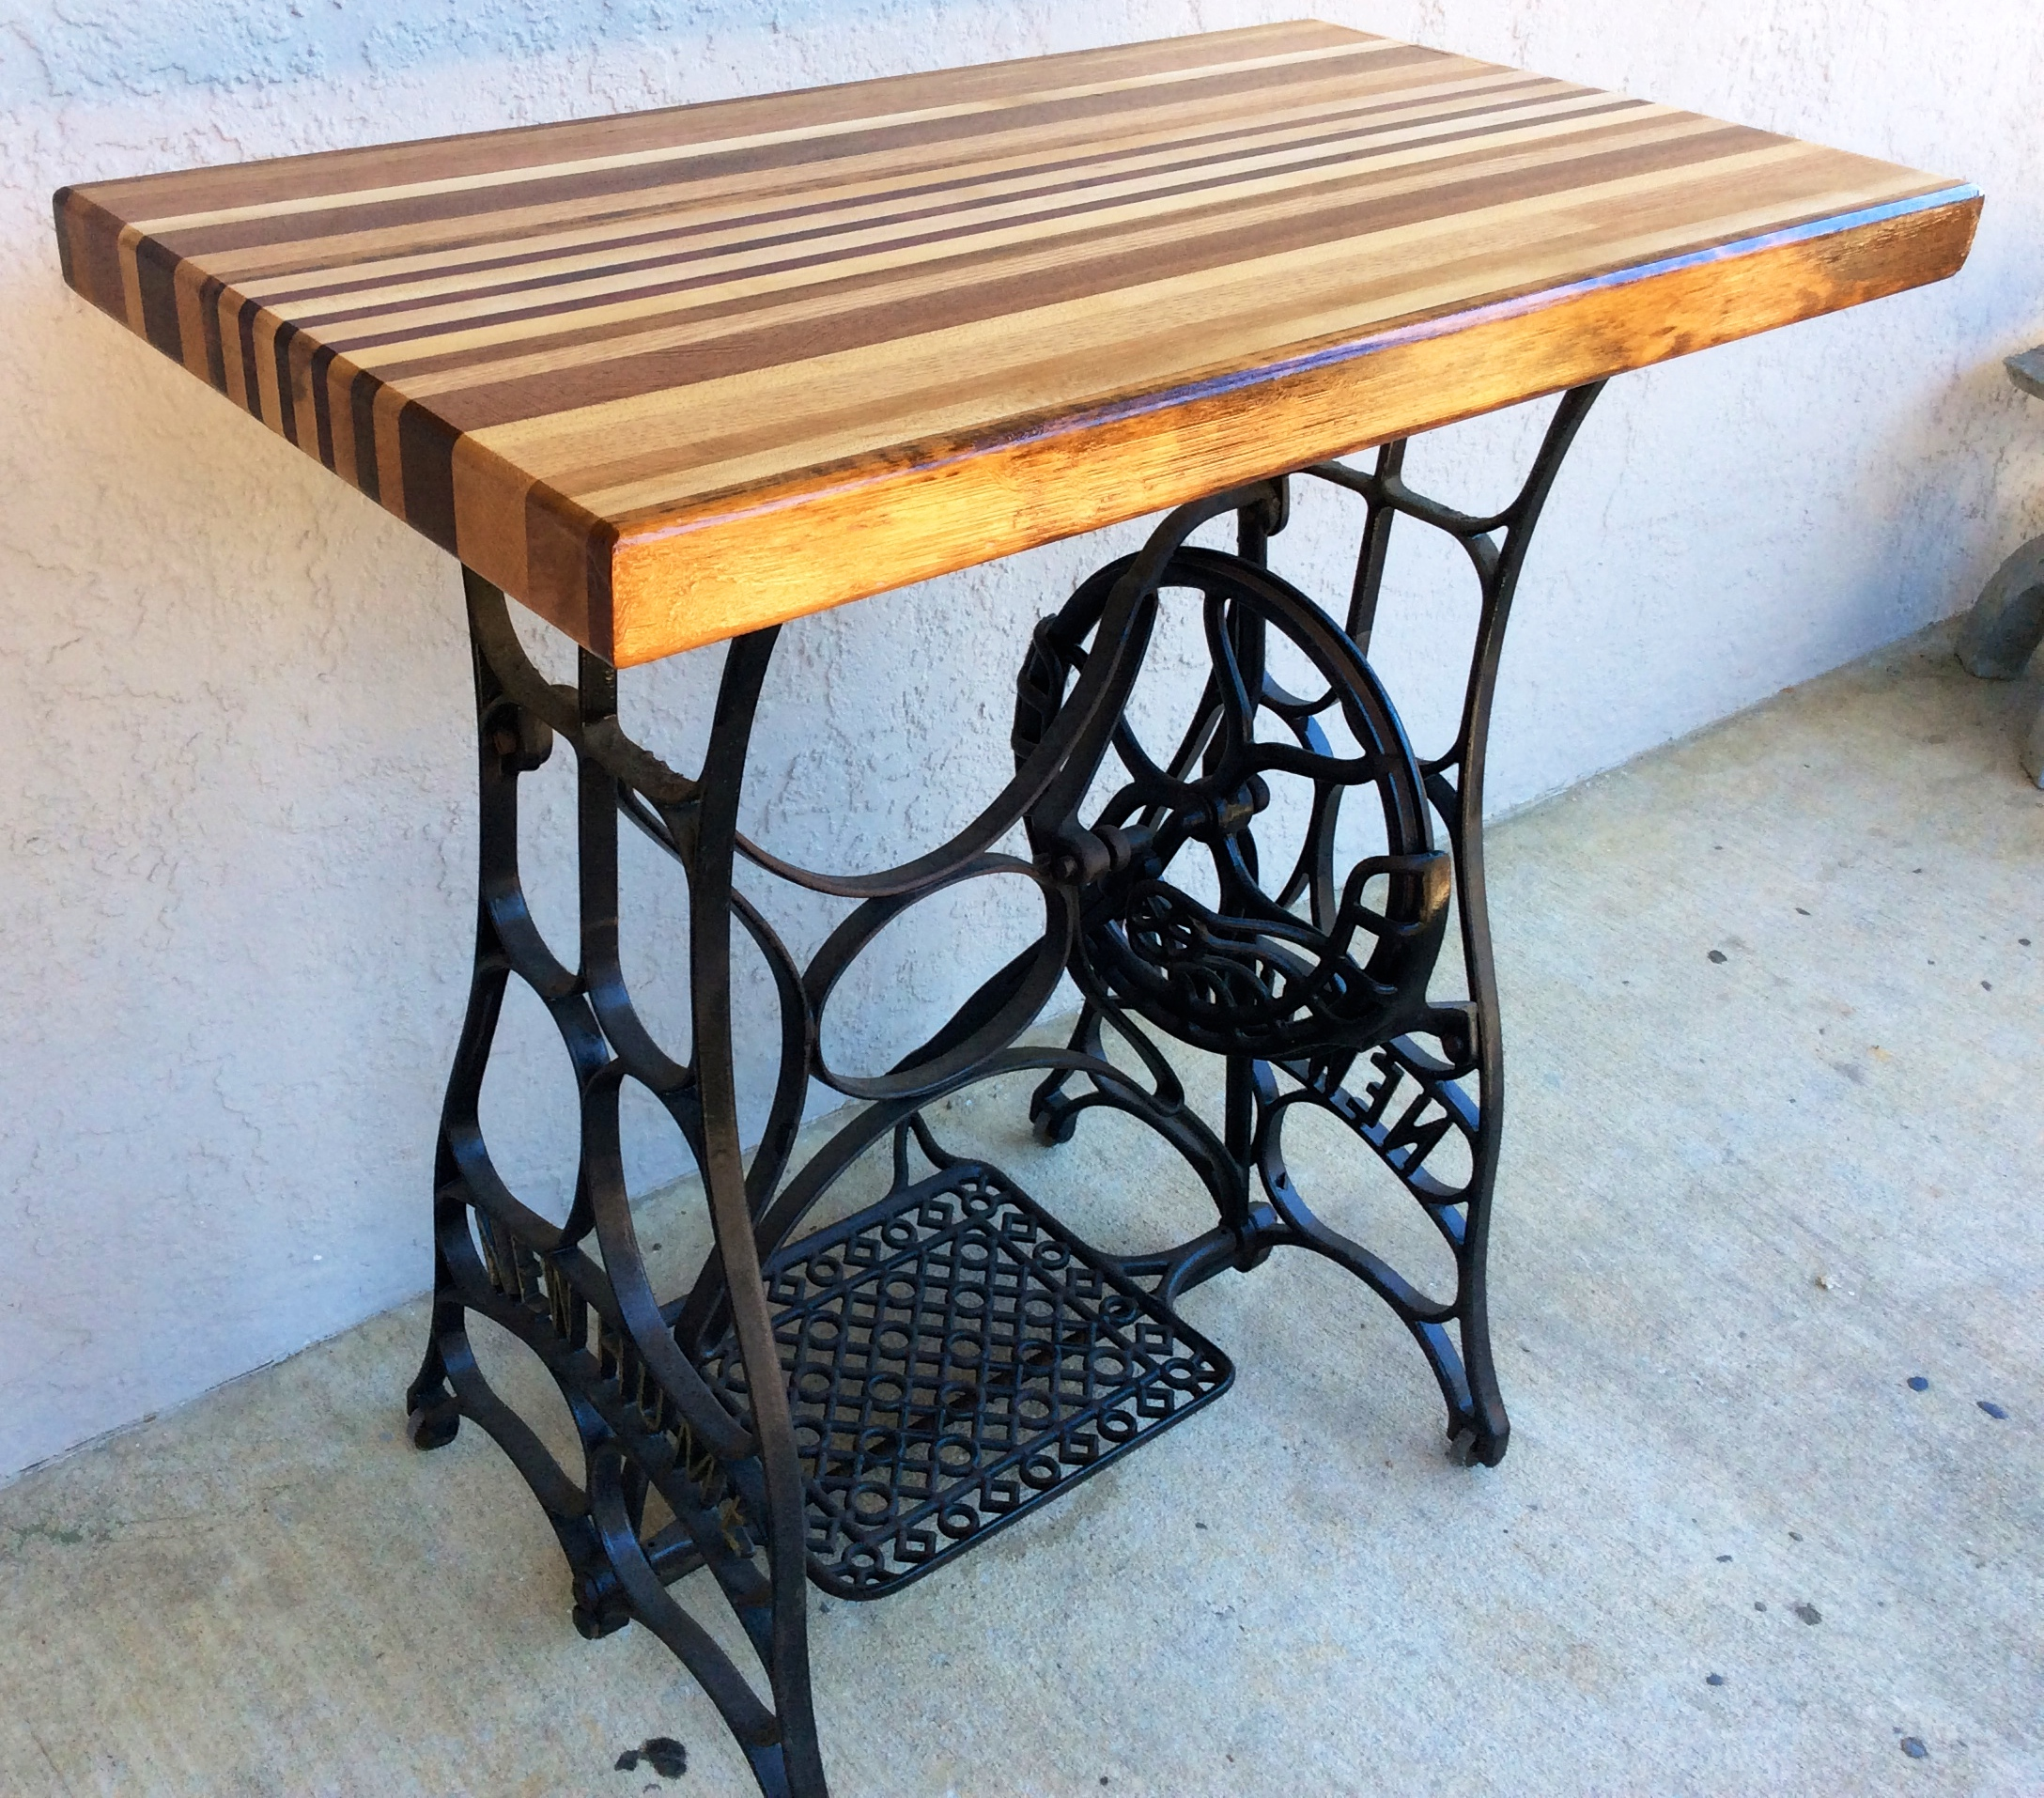 refurbished 1920s new home sewing machine butcher block table